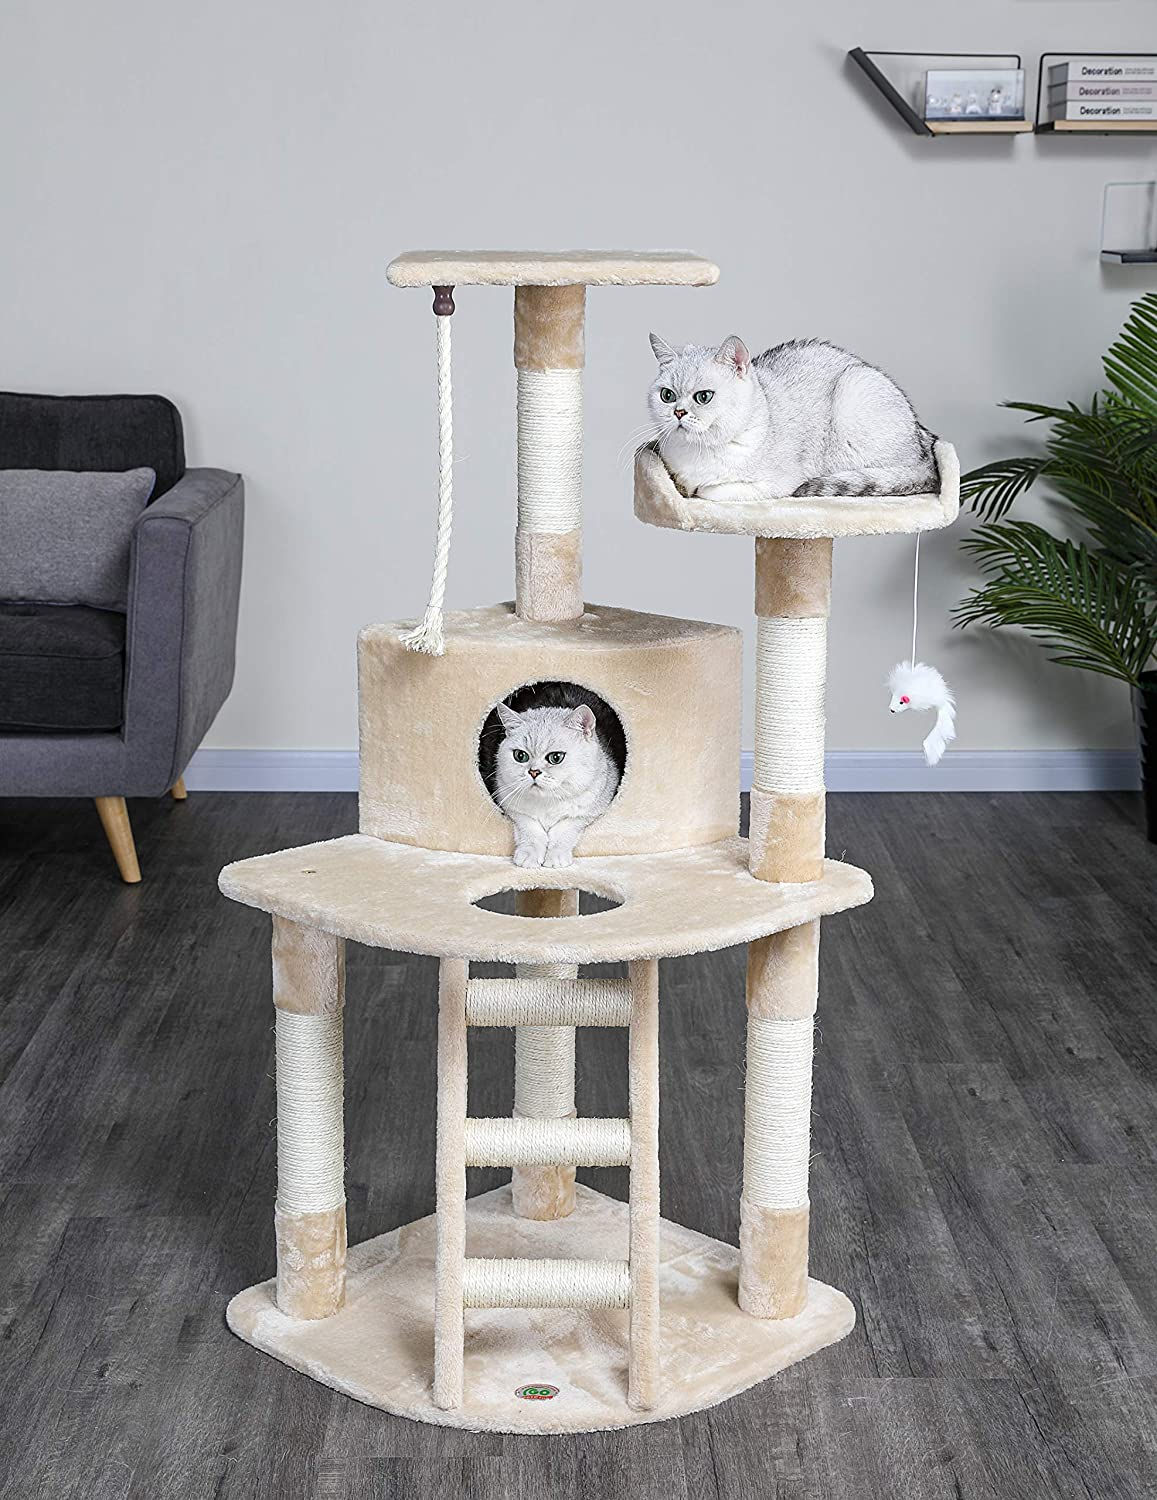 Go Pet Club Cat Tree, 47.5-inch, Brown : Cat Tower : Pet Supplies